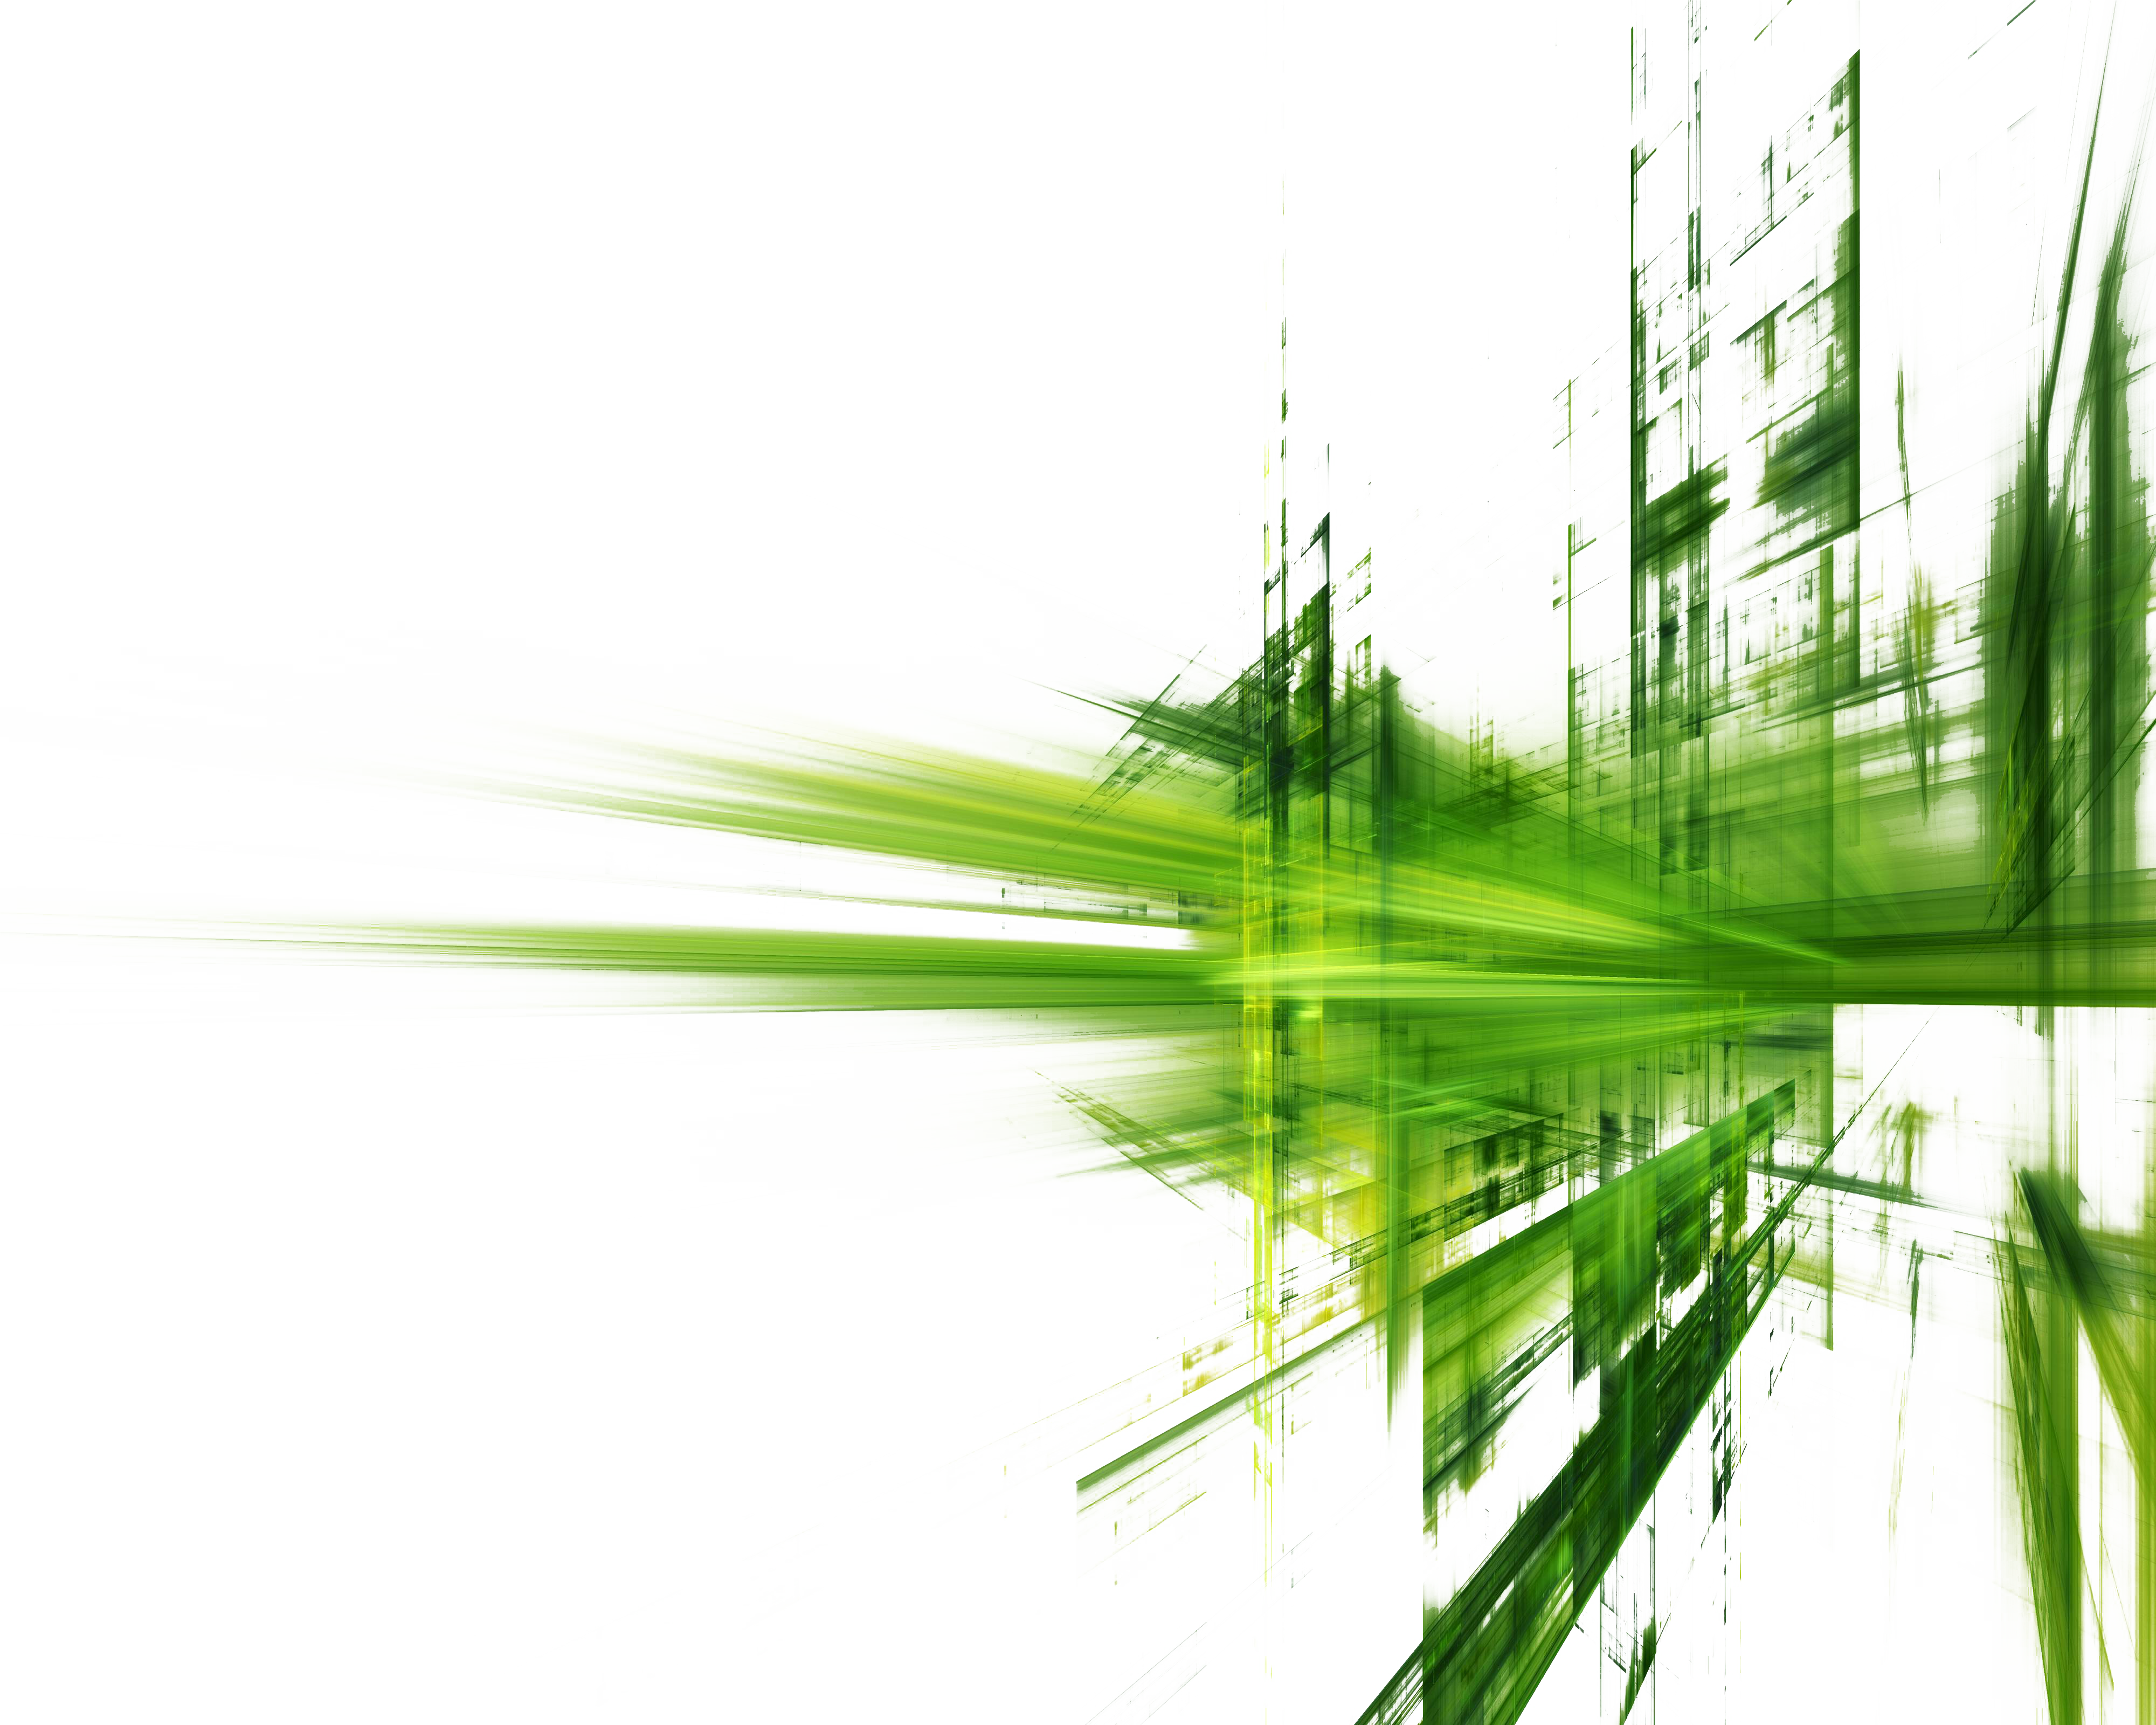 Art stock illustration sense. Green abstract background png jpg free download